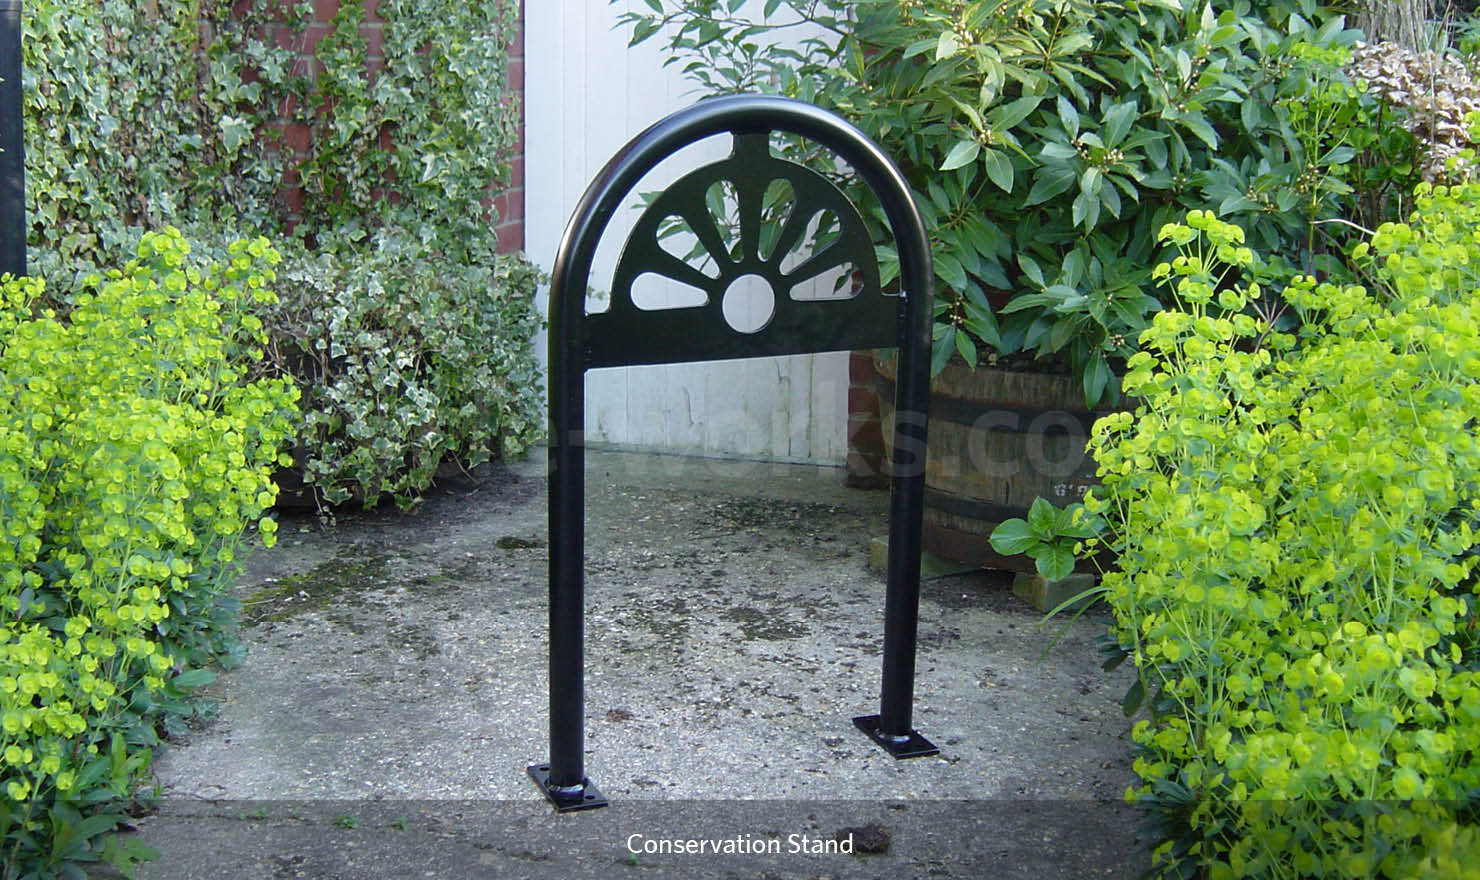 Conservation Bike Racks